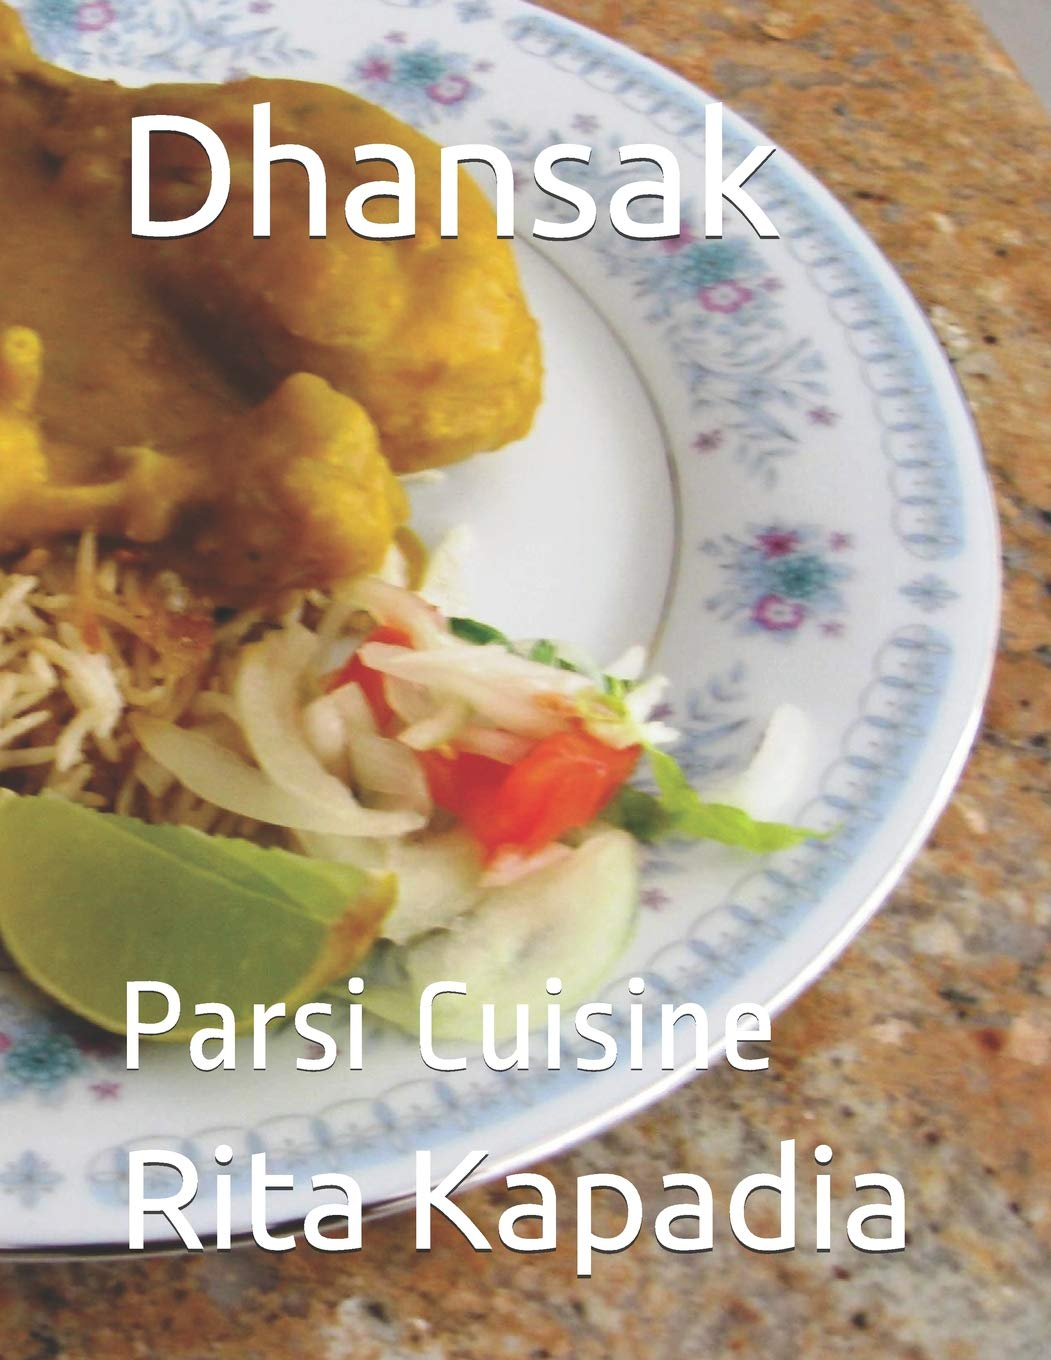 Cookbook / eBook : Dhansak Enjoy learning how to make a very mouth-watering, satisfying and healthy Parsi Dhansak Meal – with or without Meat. Book 7 of 8 in the Parsi Cuisine Series. Available worldwide and in India.